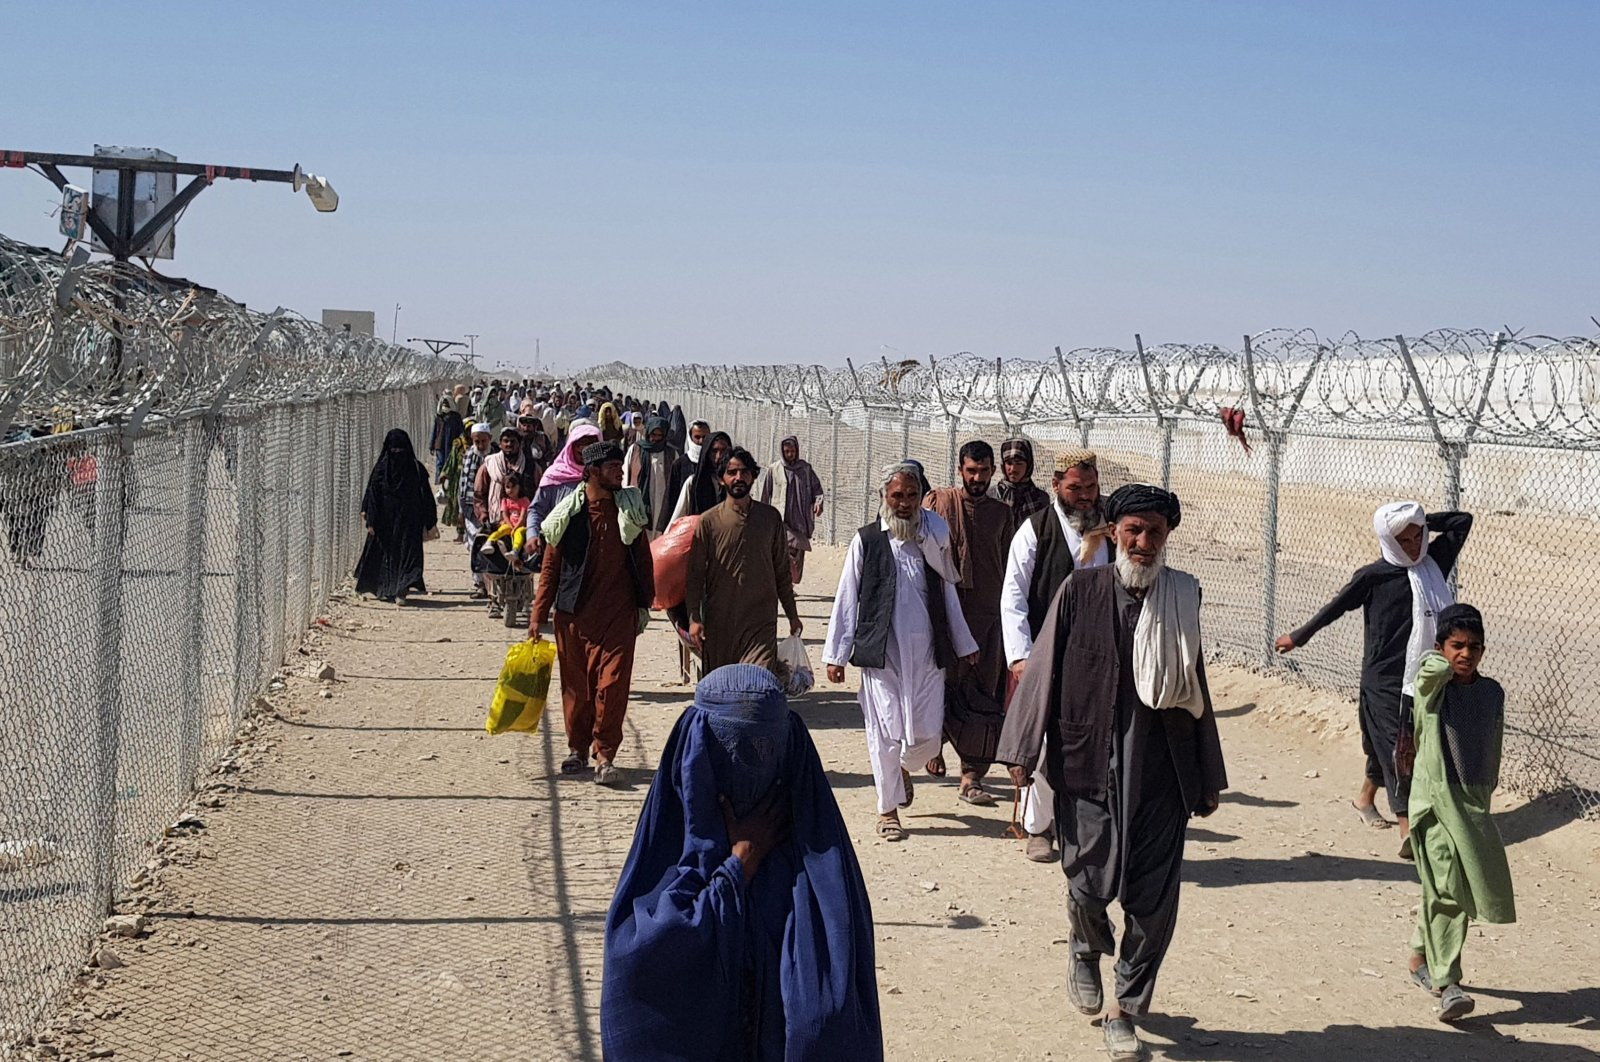 Afghan nationals cross the border into Pakistan at the Pakistan-Afghanistan border crossing in Chaman, Aug.18, 2021. (AFP Photo)